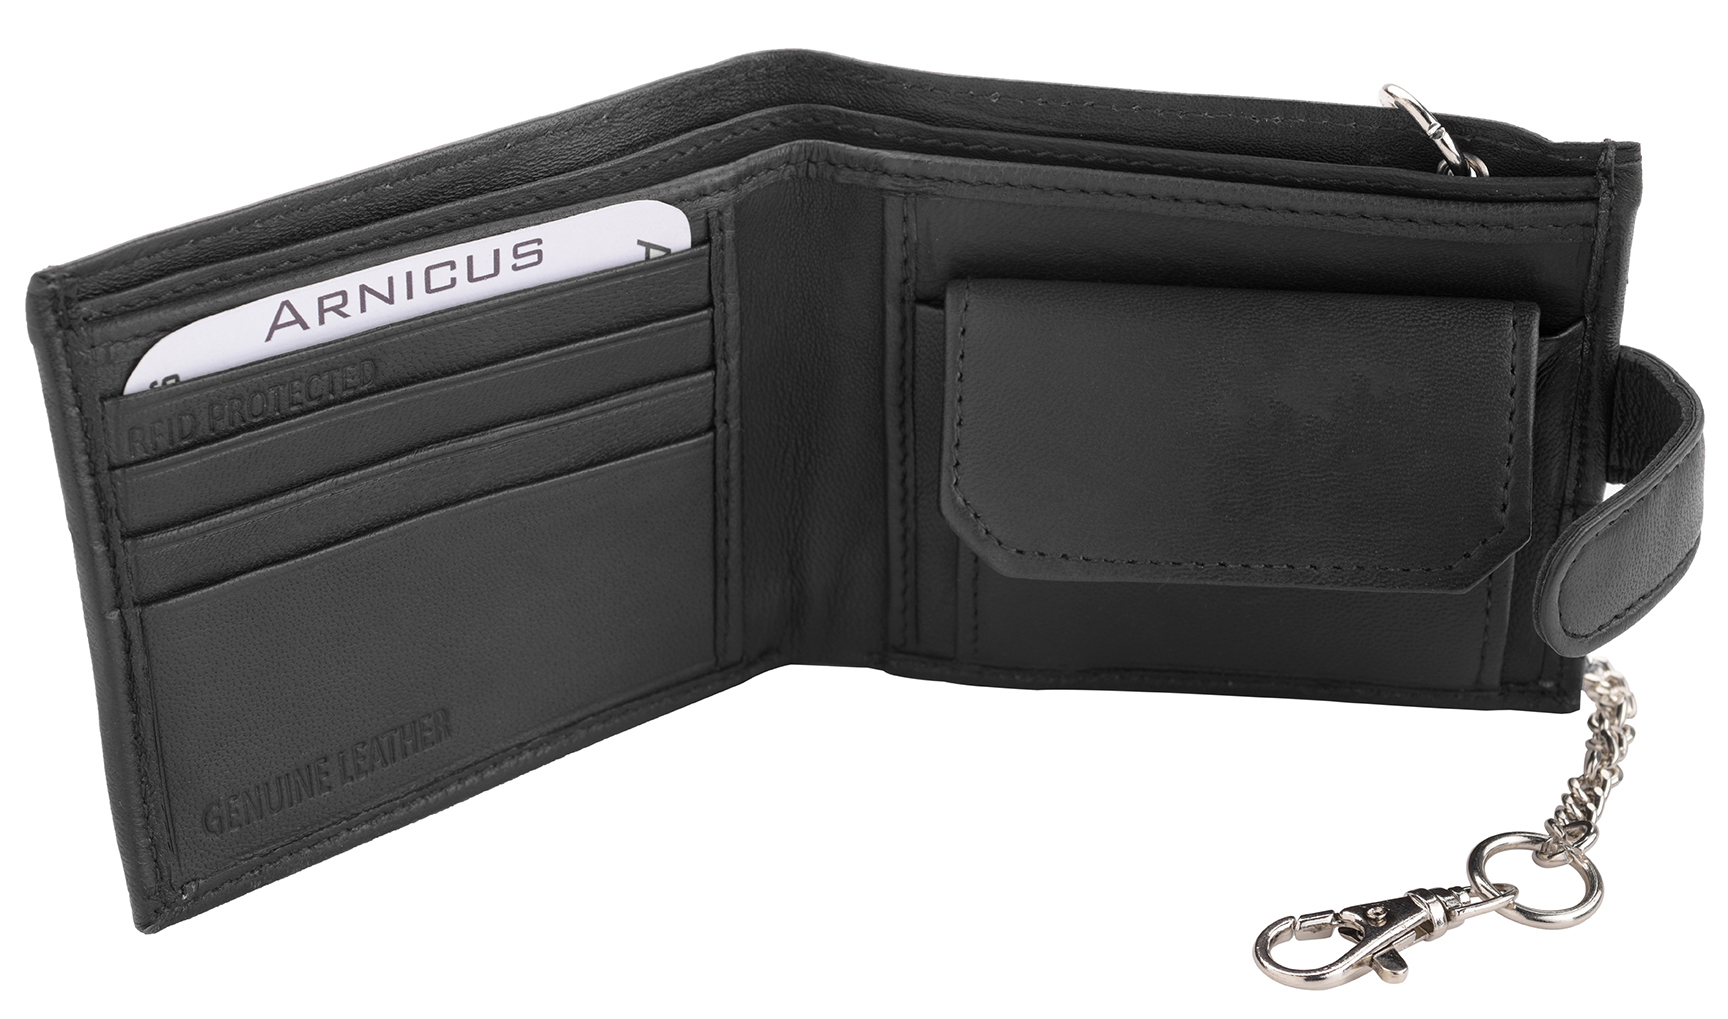 46f1e20b20 Mens Soft Genuine Nappa Leather Wallet with Safety Chain - RFID ...